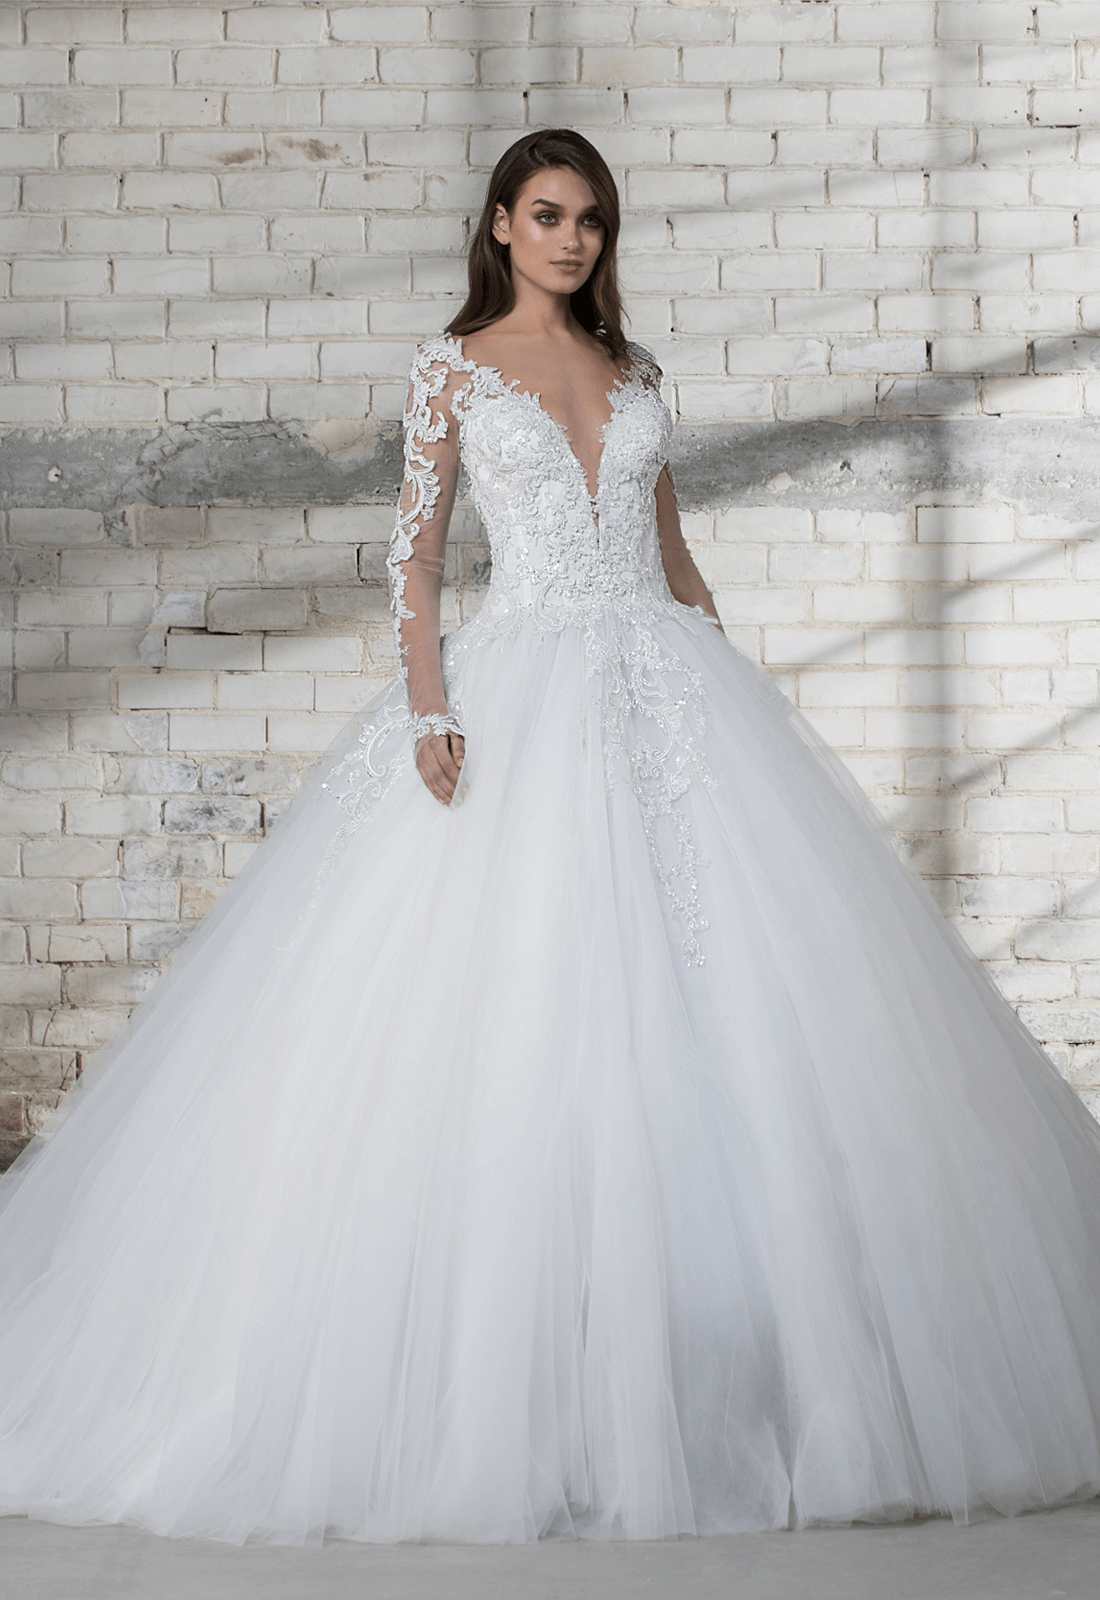 da26d97ab55 Pnina Tornai Dresses For Sale